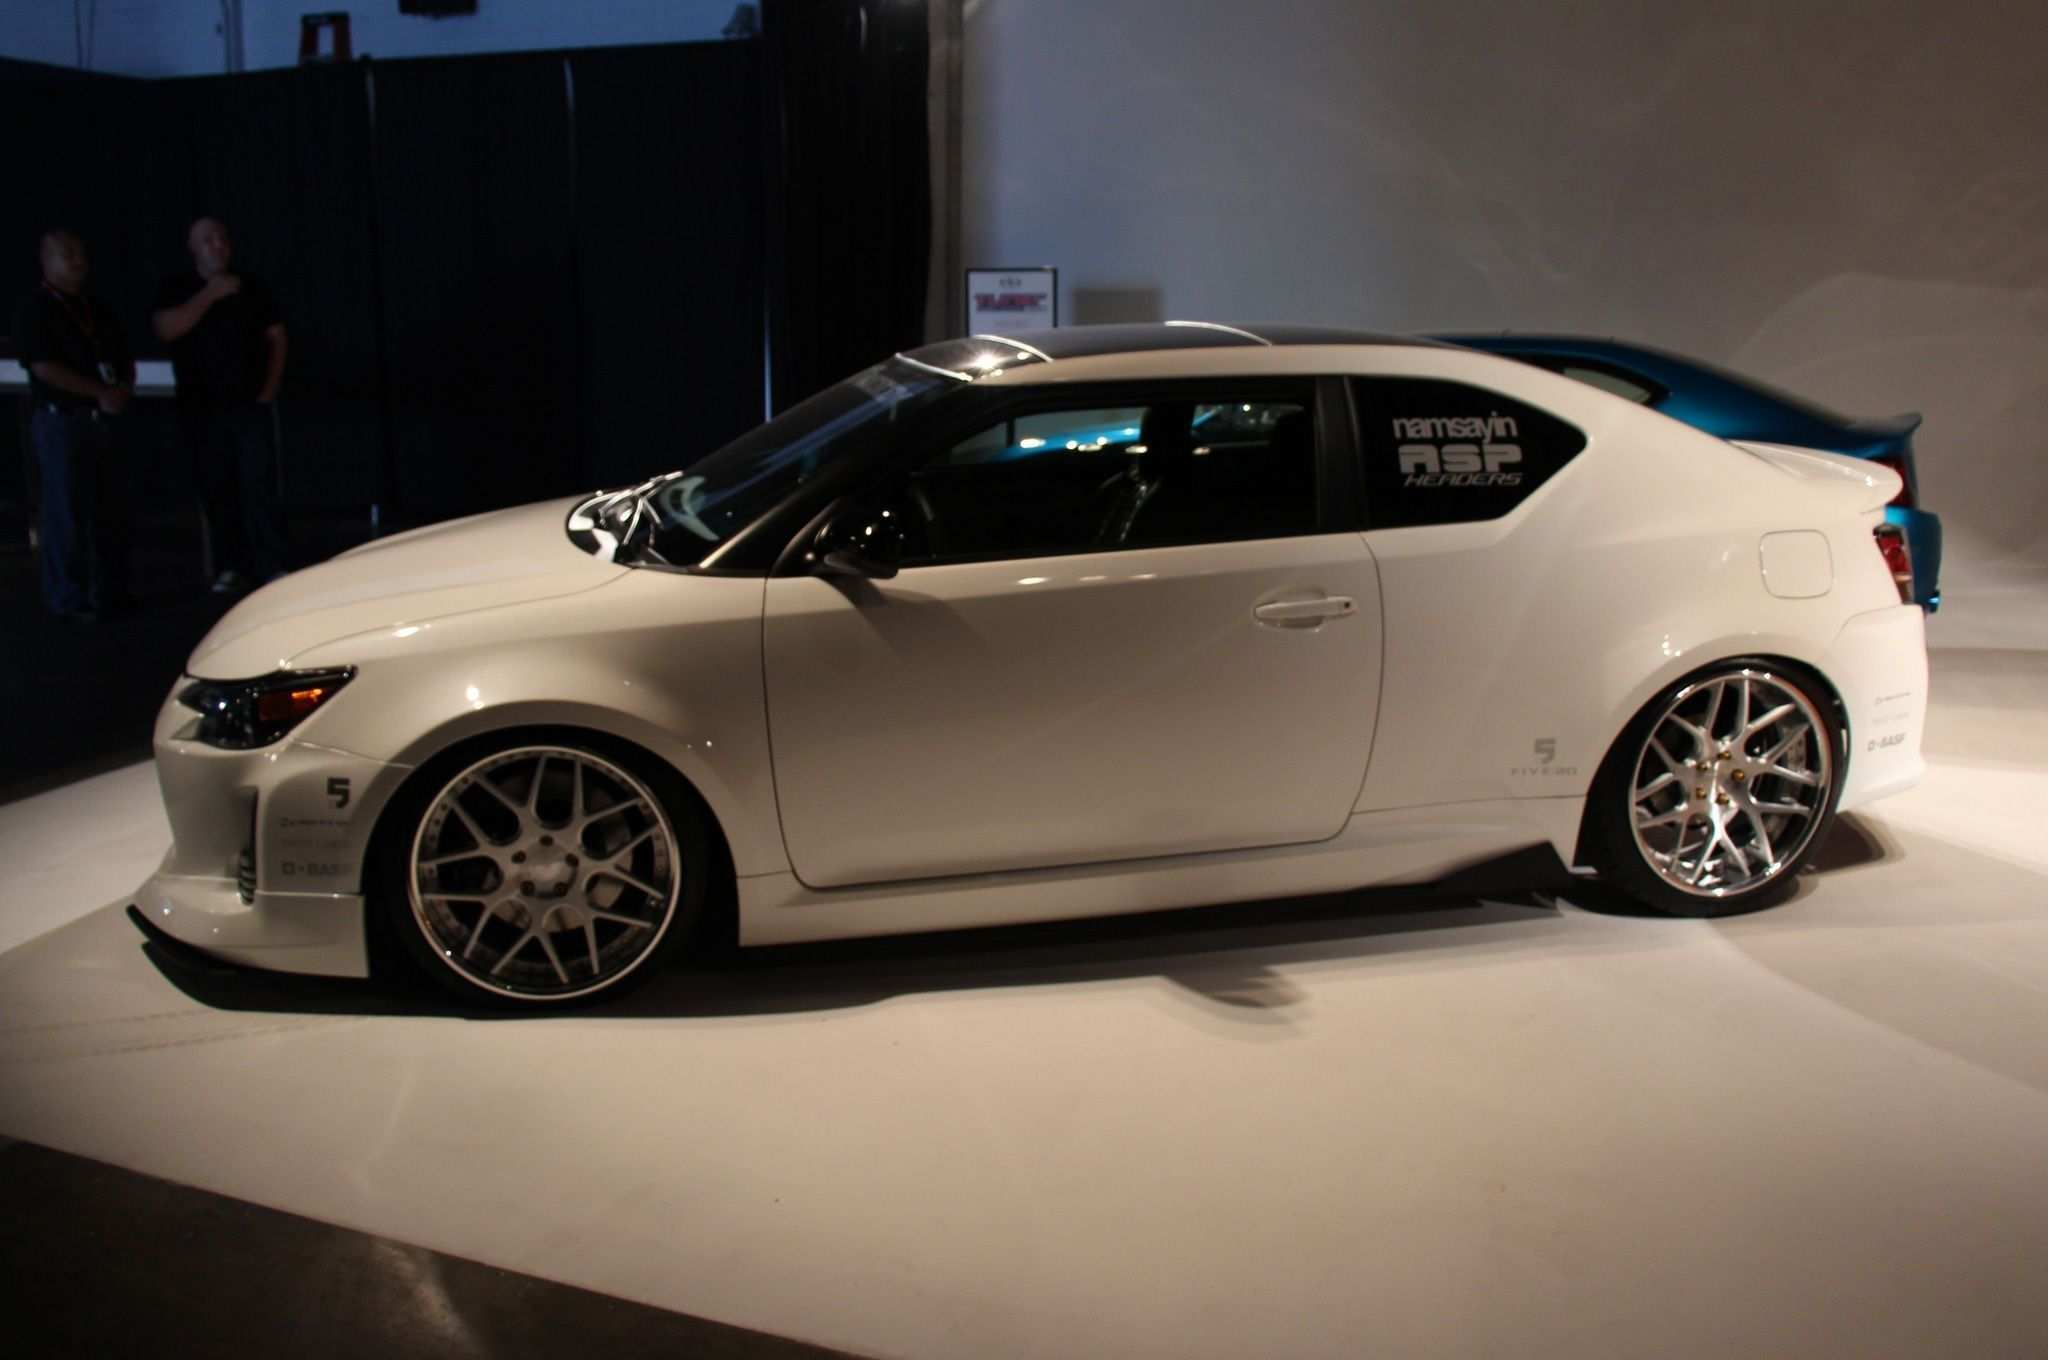 71 All New 2019 Scion Tced Price Design And Review